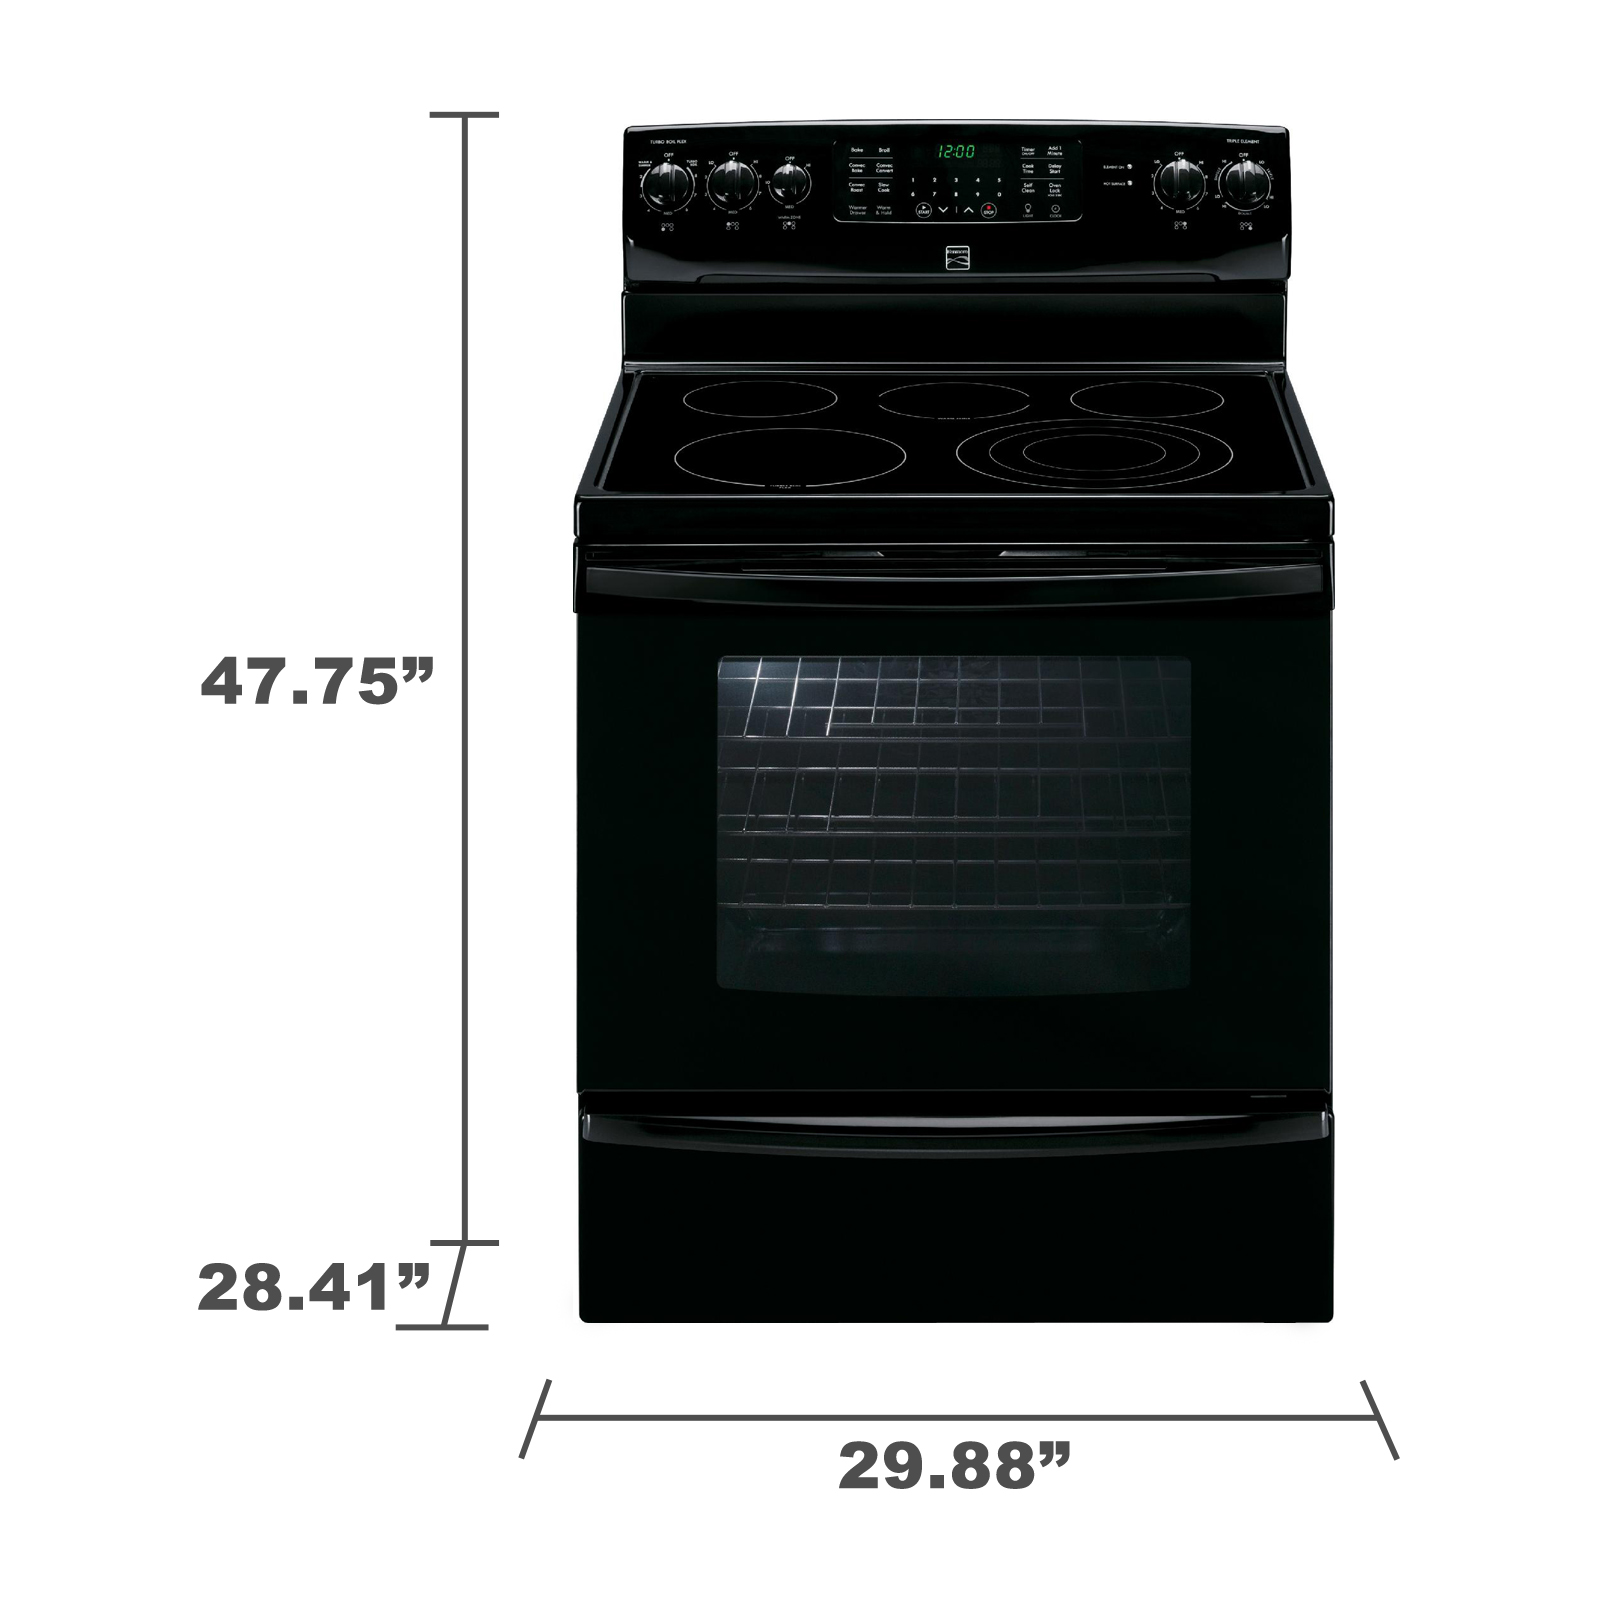 Kenmore 94249 5.8 cu. ft. Electric Range w/ True Convection - Black